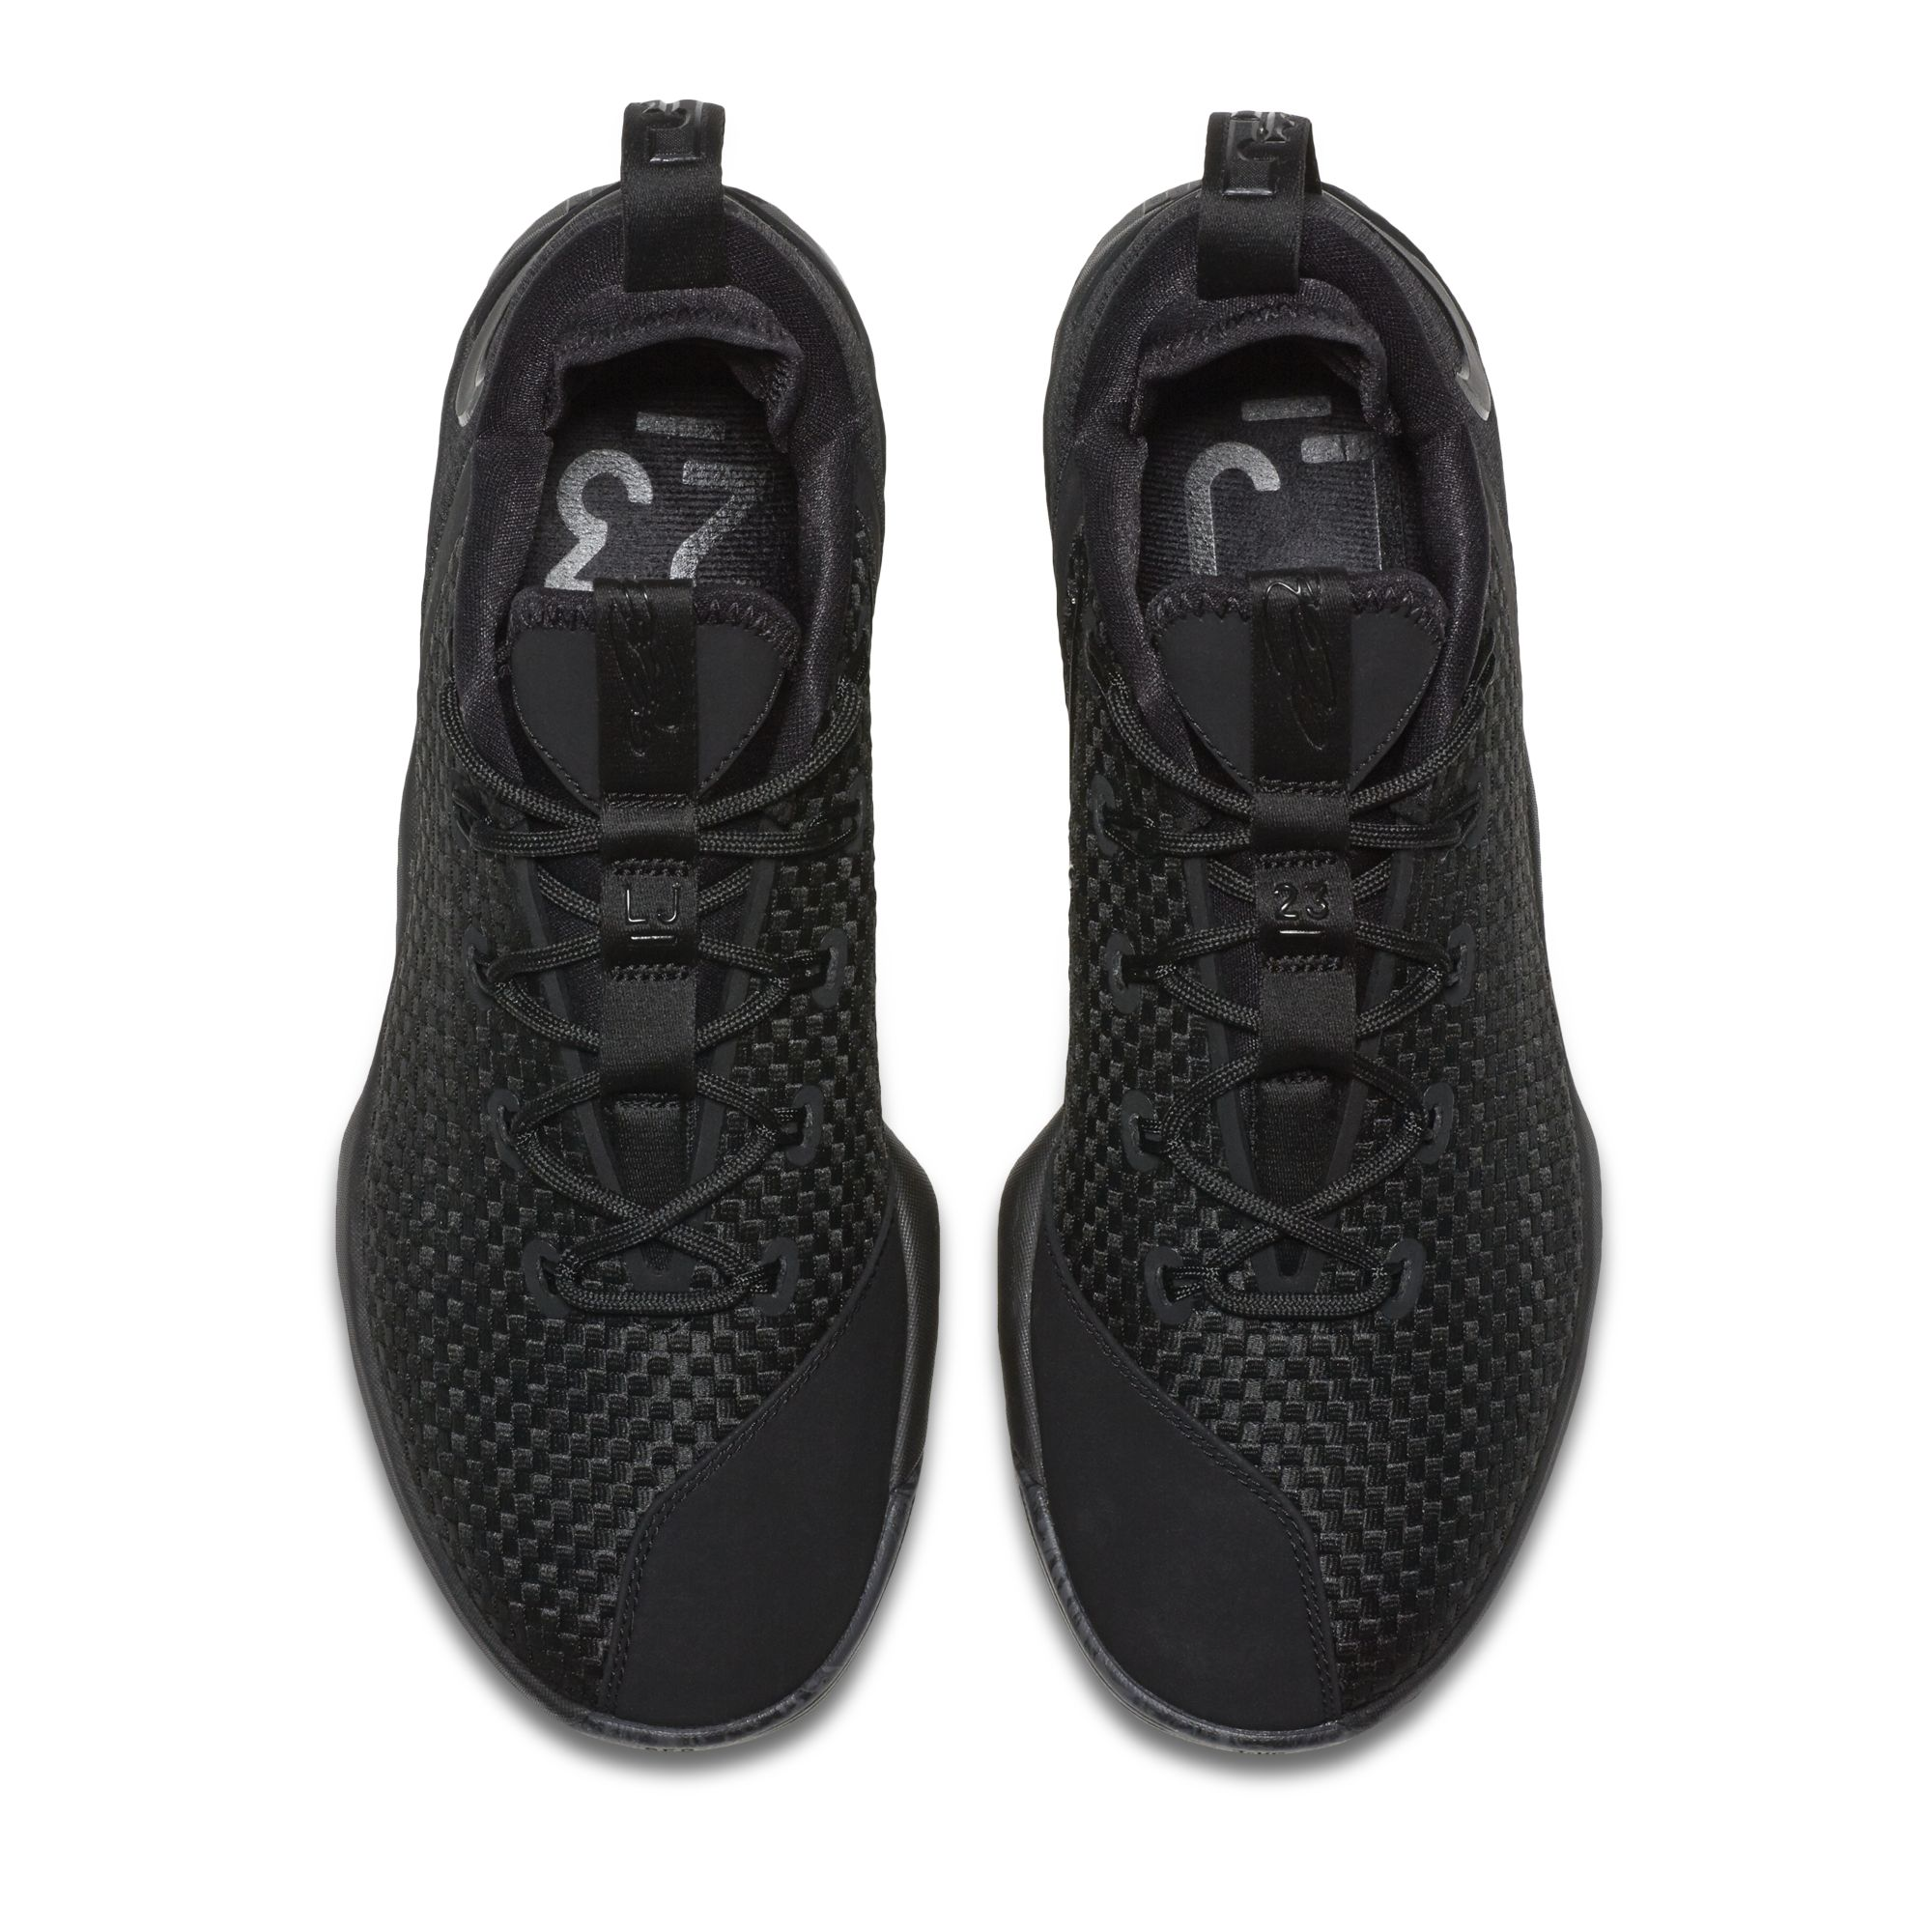 a233ab2d9f8 Nike-LeBron-14-Low-Black-3 - WearTesters